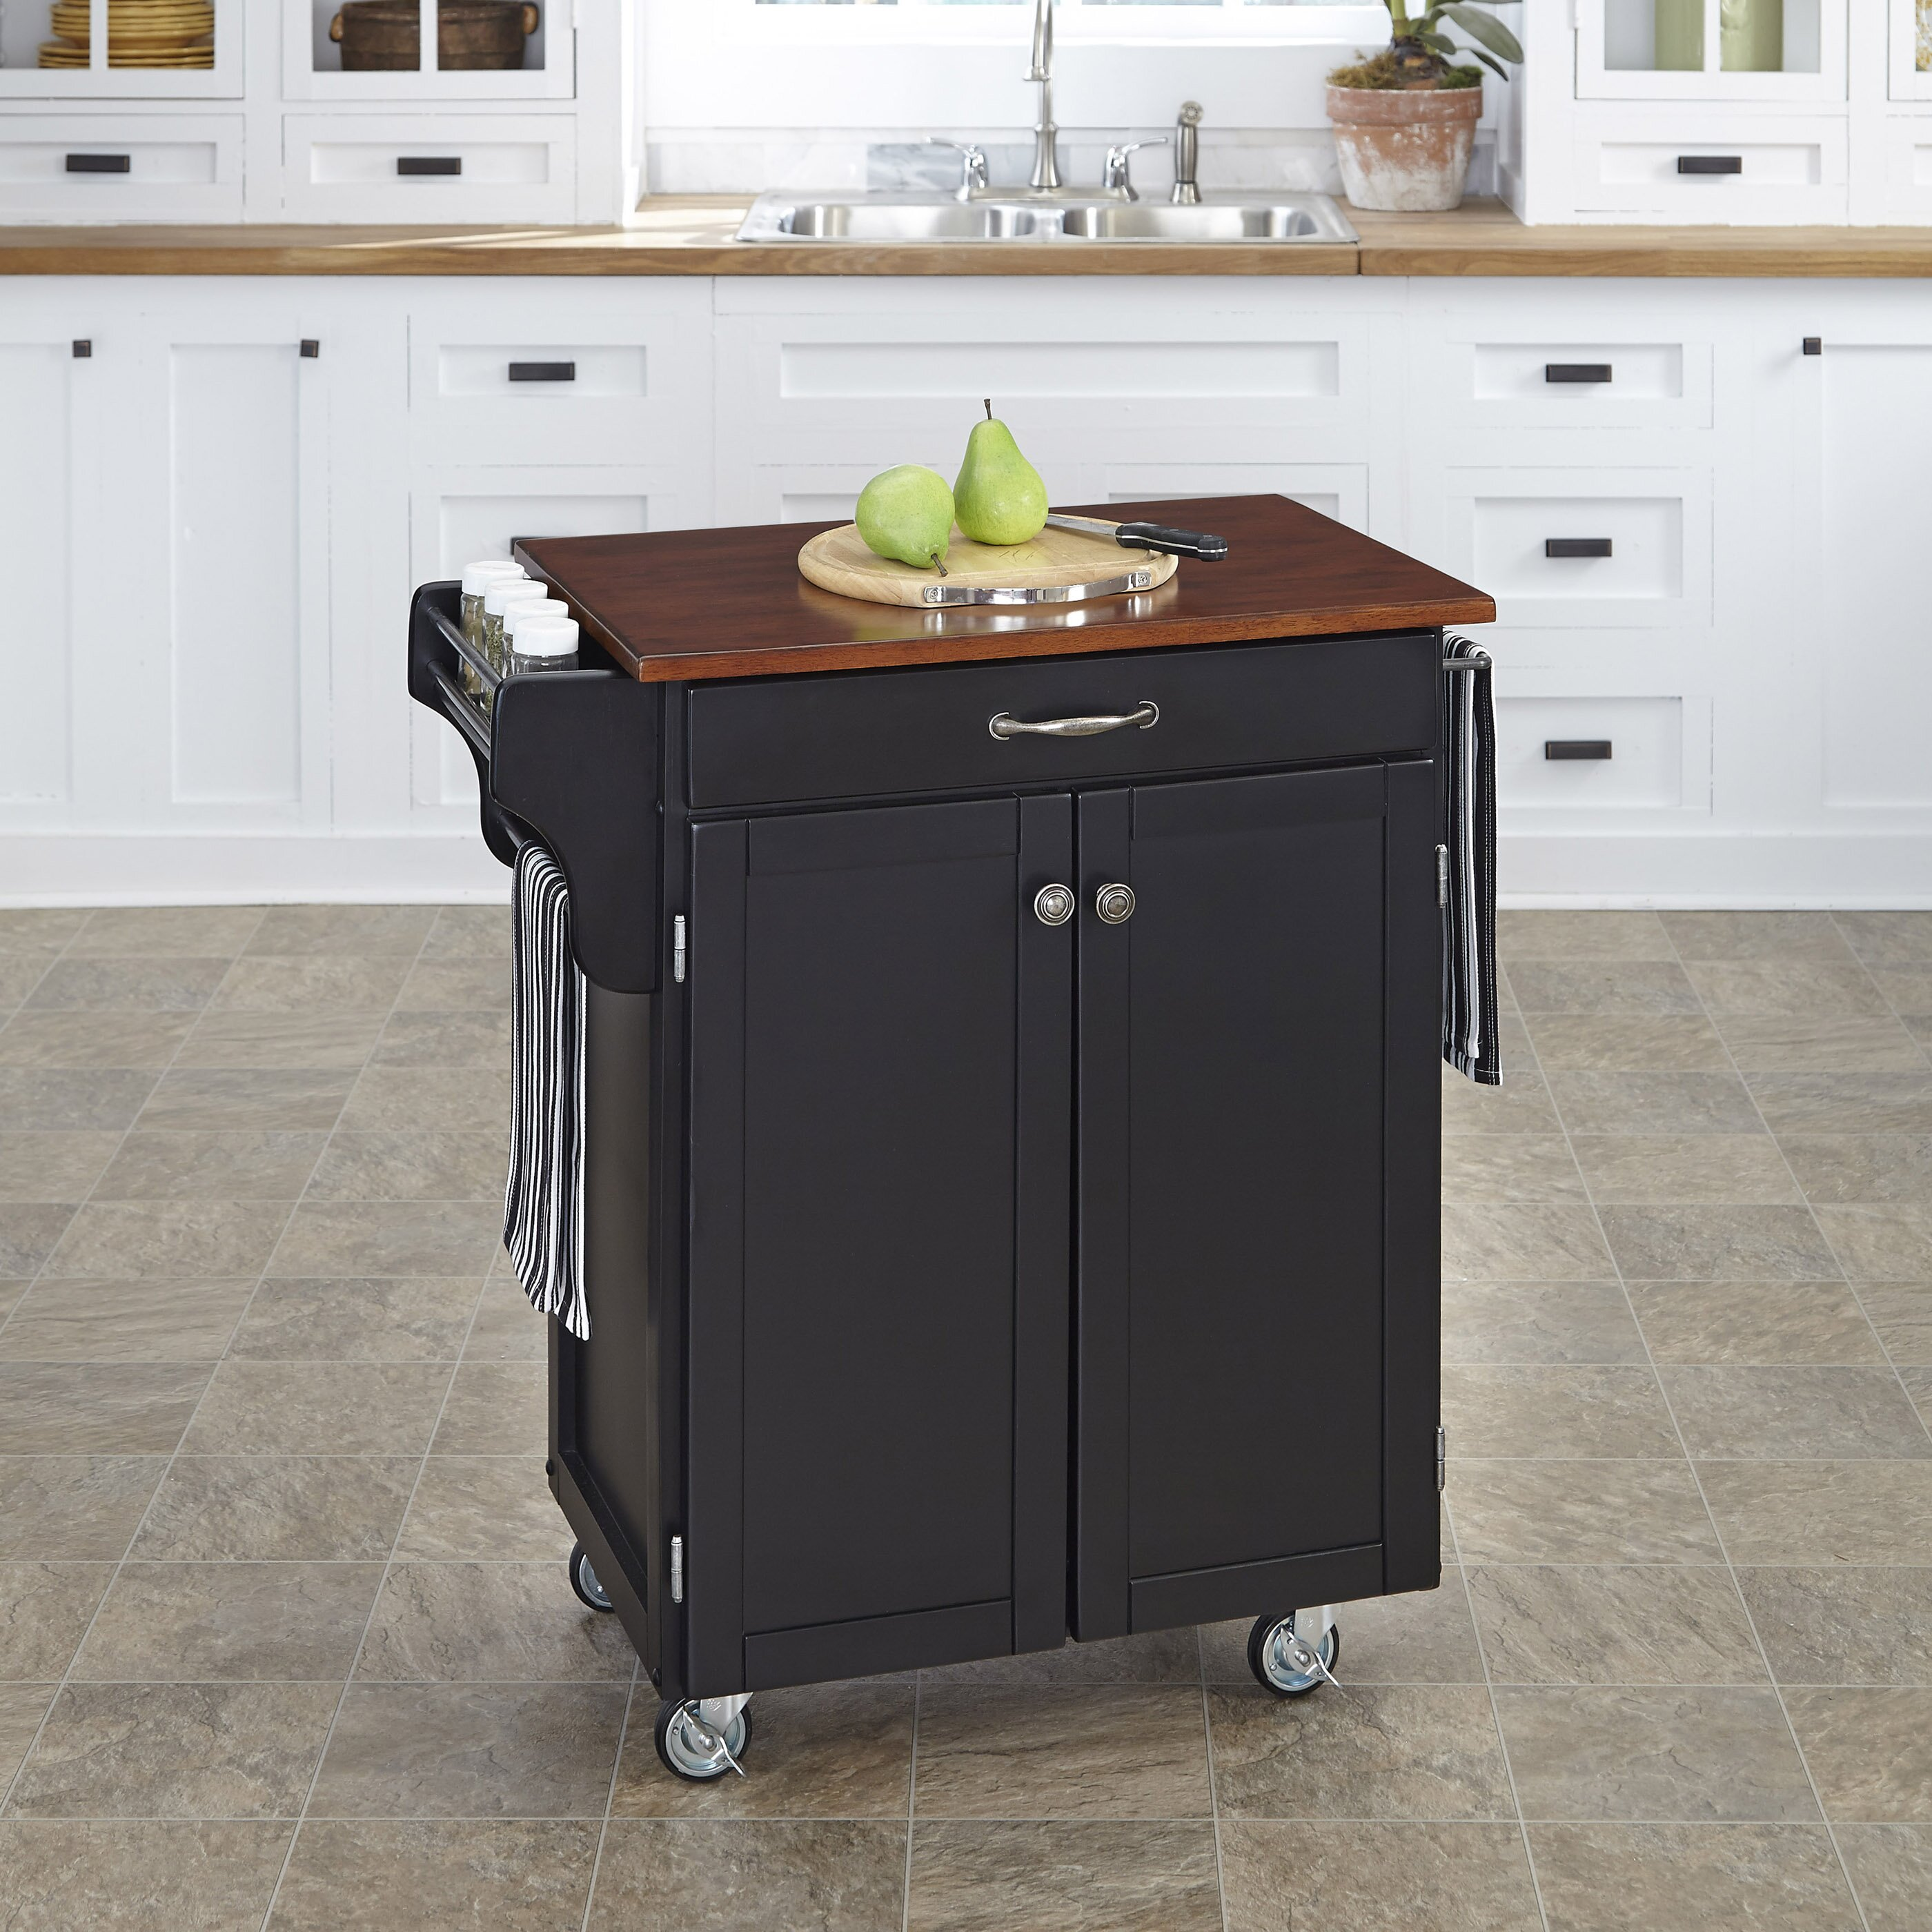 Home Styles Cuisine Kitchen Cart & Reviews